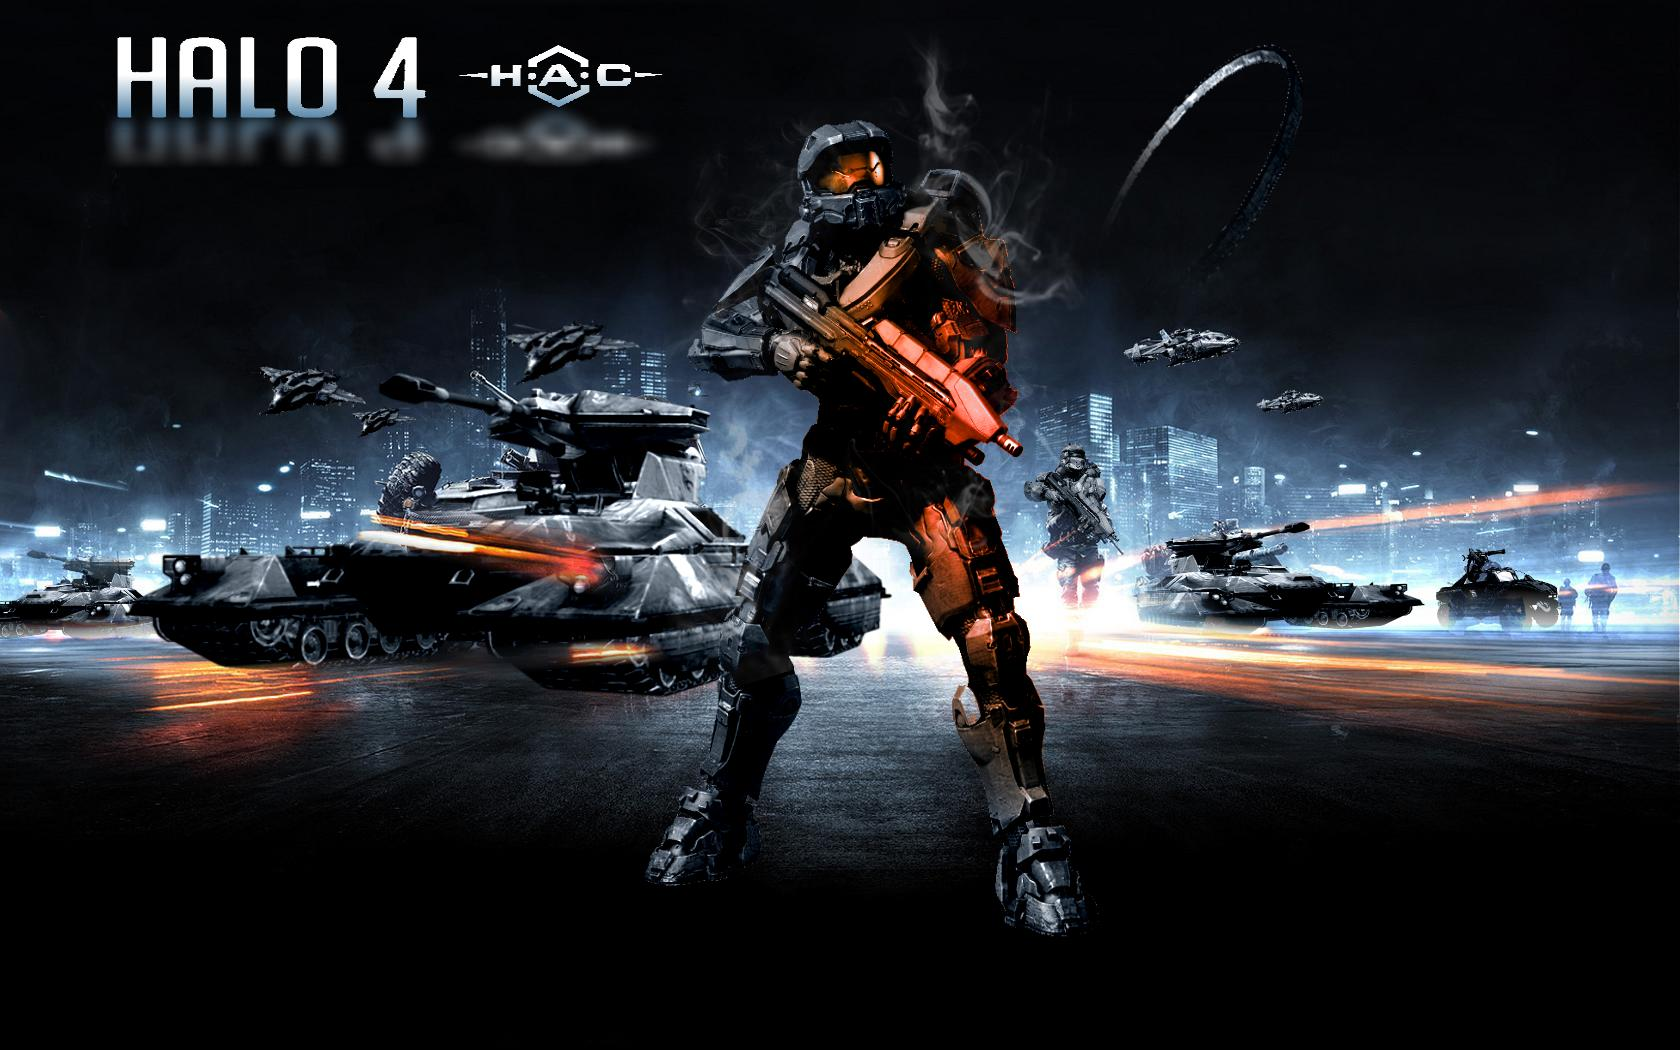 Description Halo 4 Wallpaper is a hi res Wallpaper for pc desktops 1680x1050